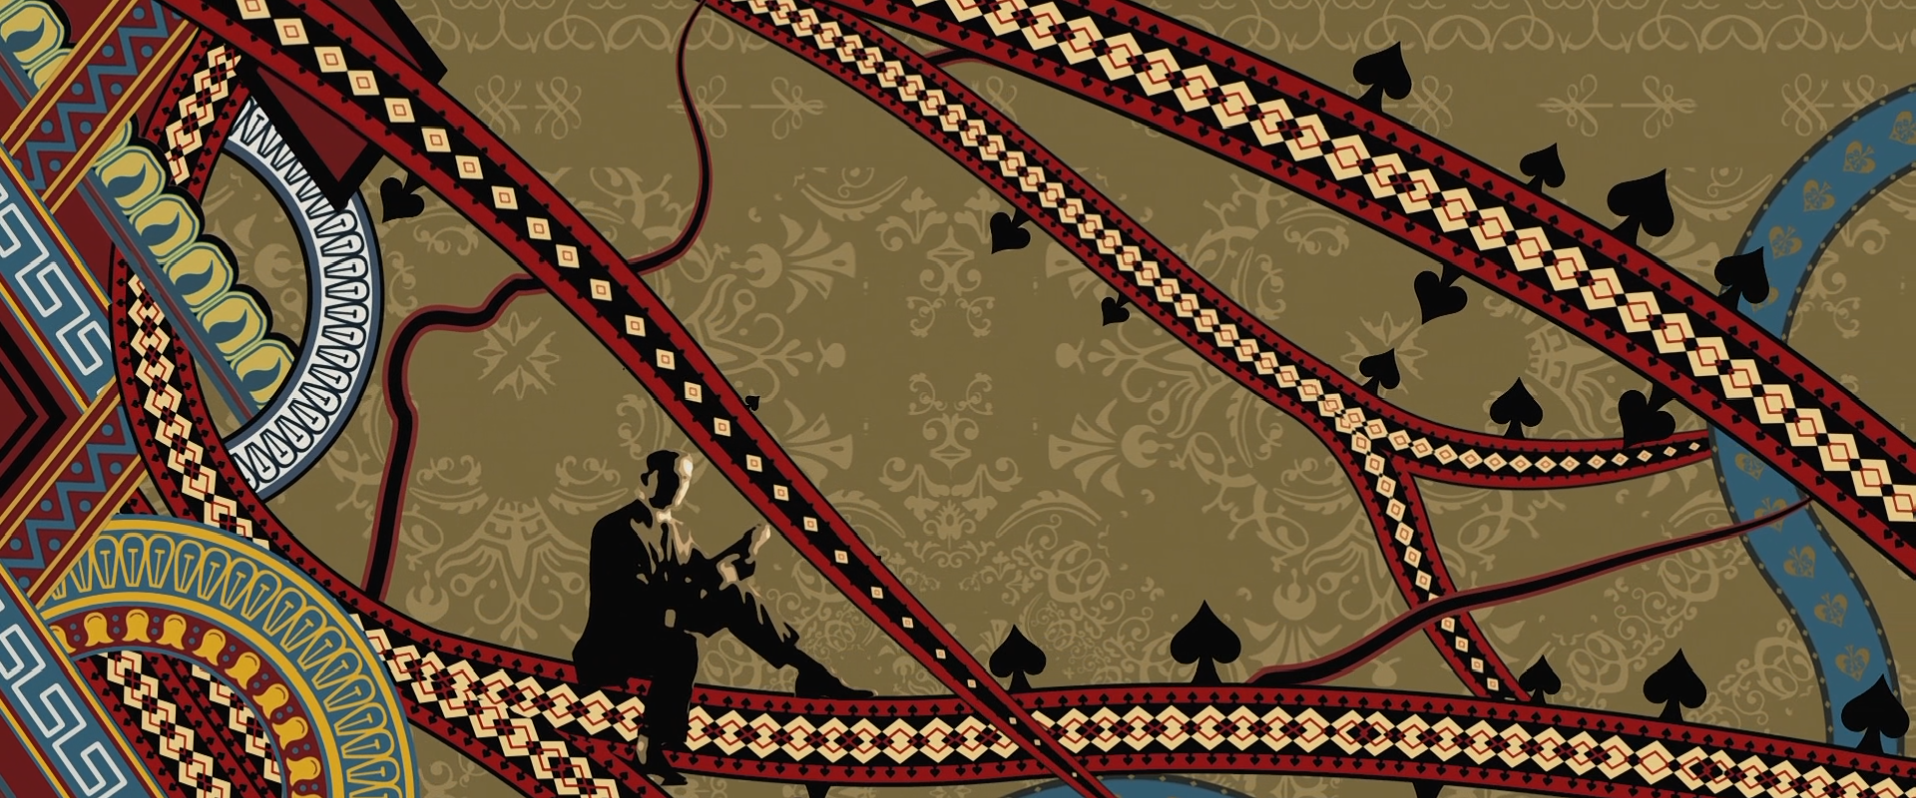 Opening credits of casino royale tips and los vegas and gambling